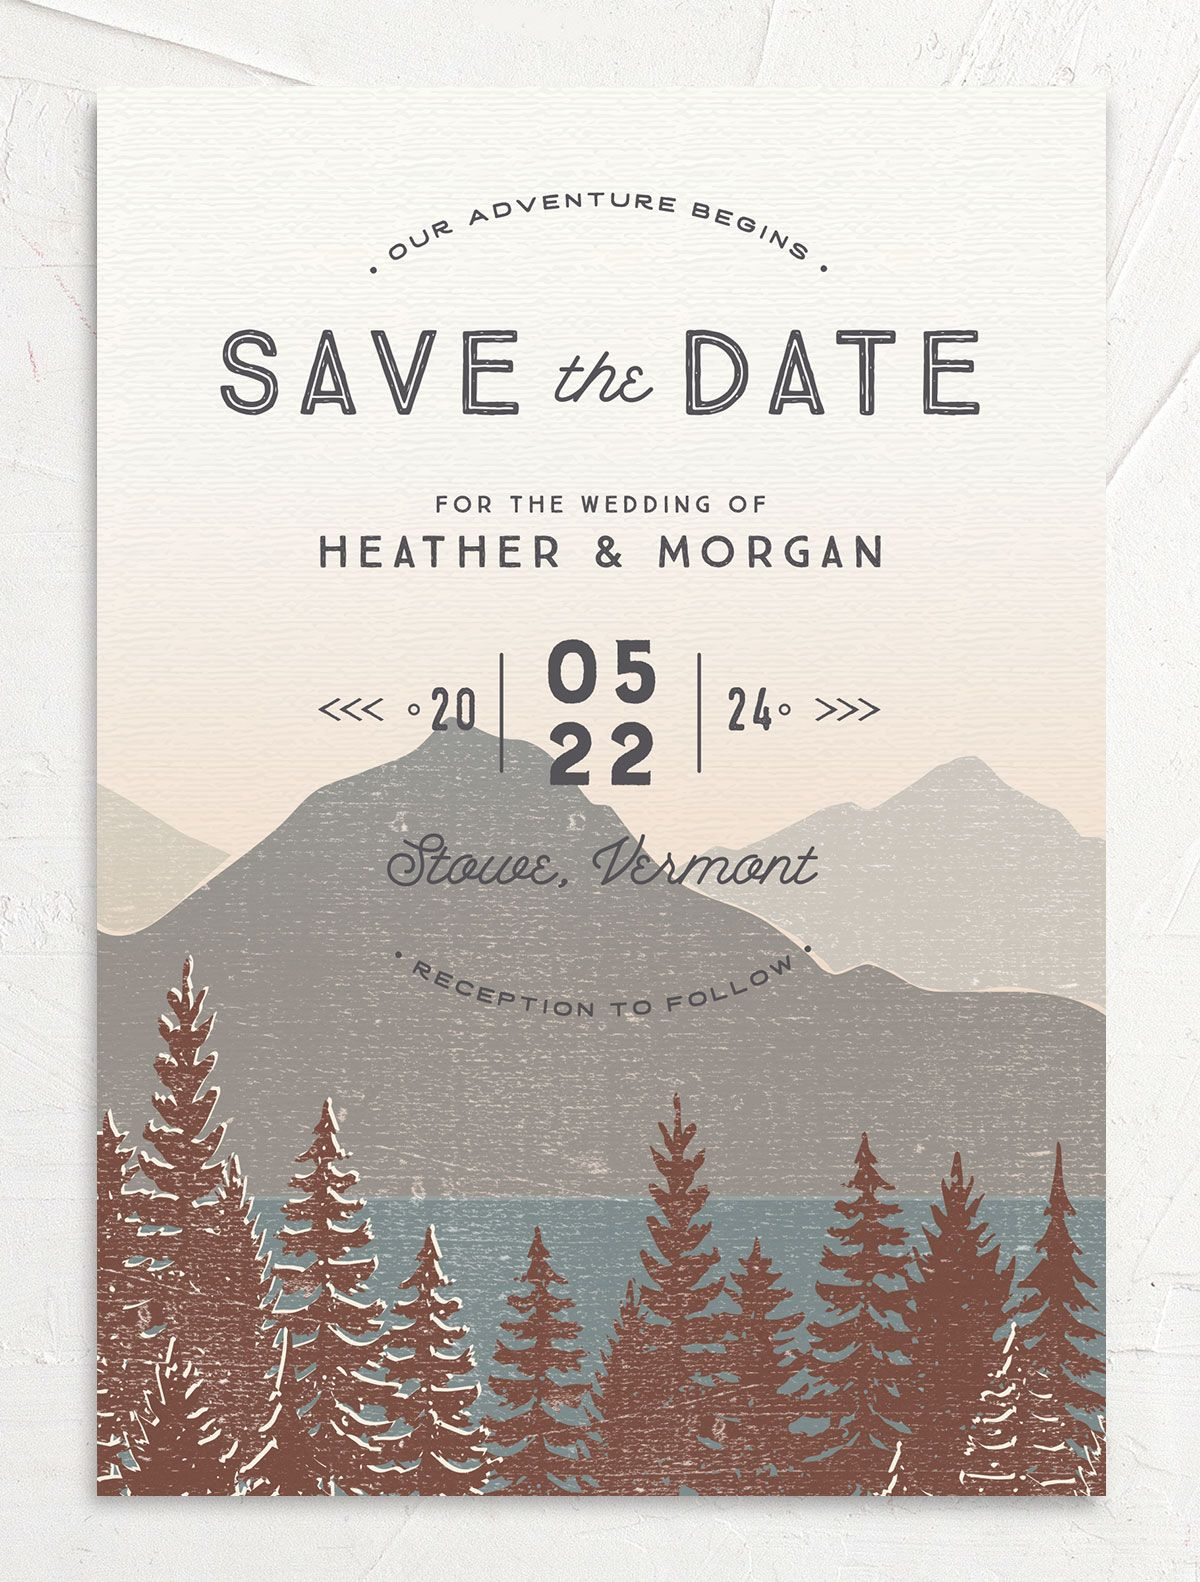 Vintage Mountainside Save the Date card front in brown